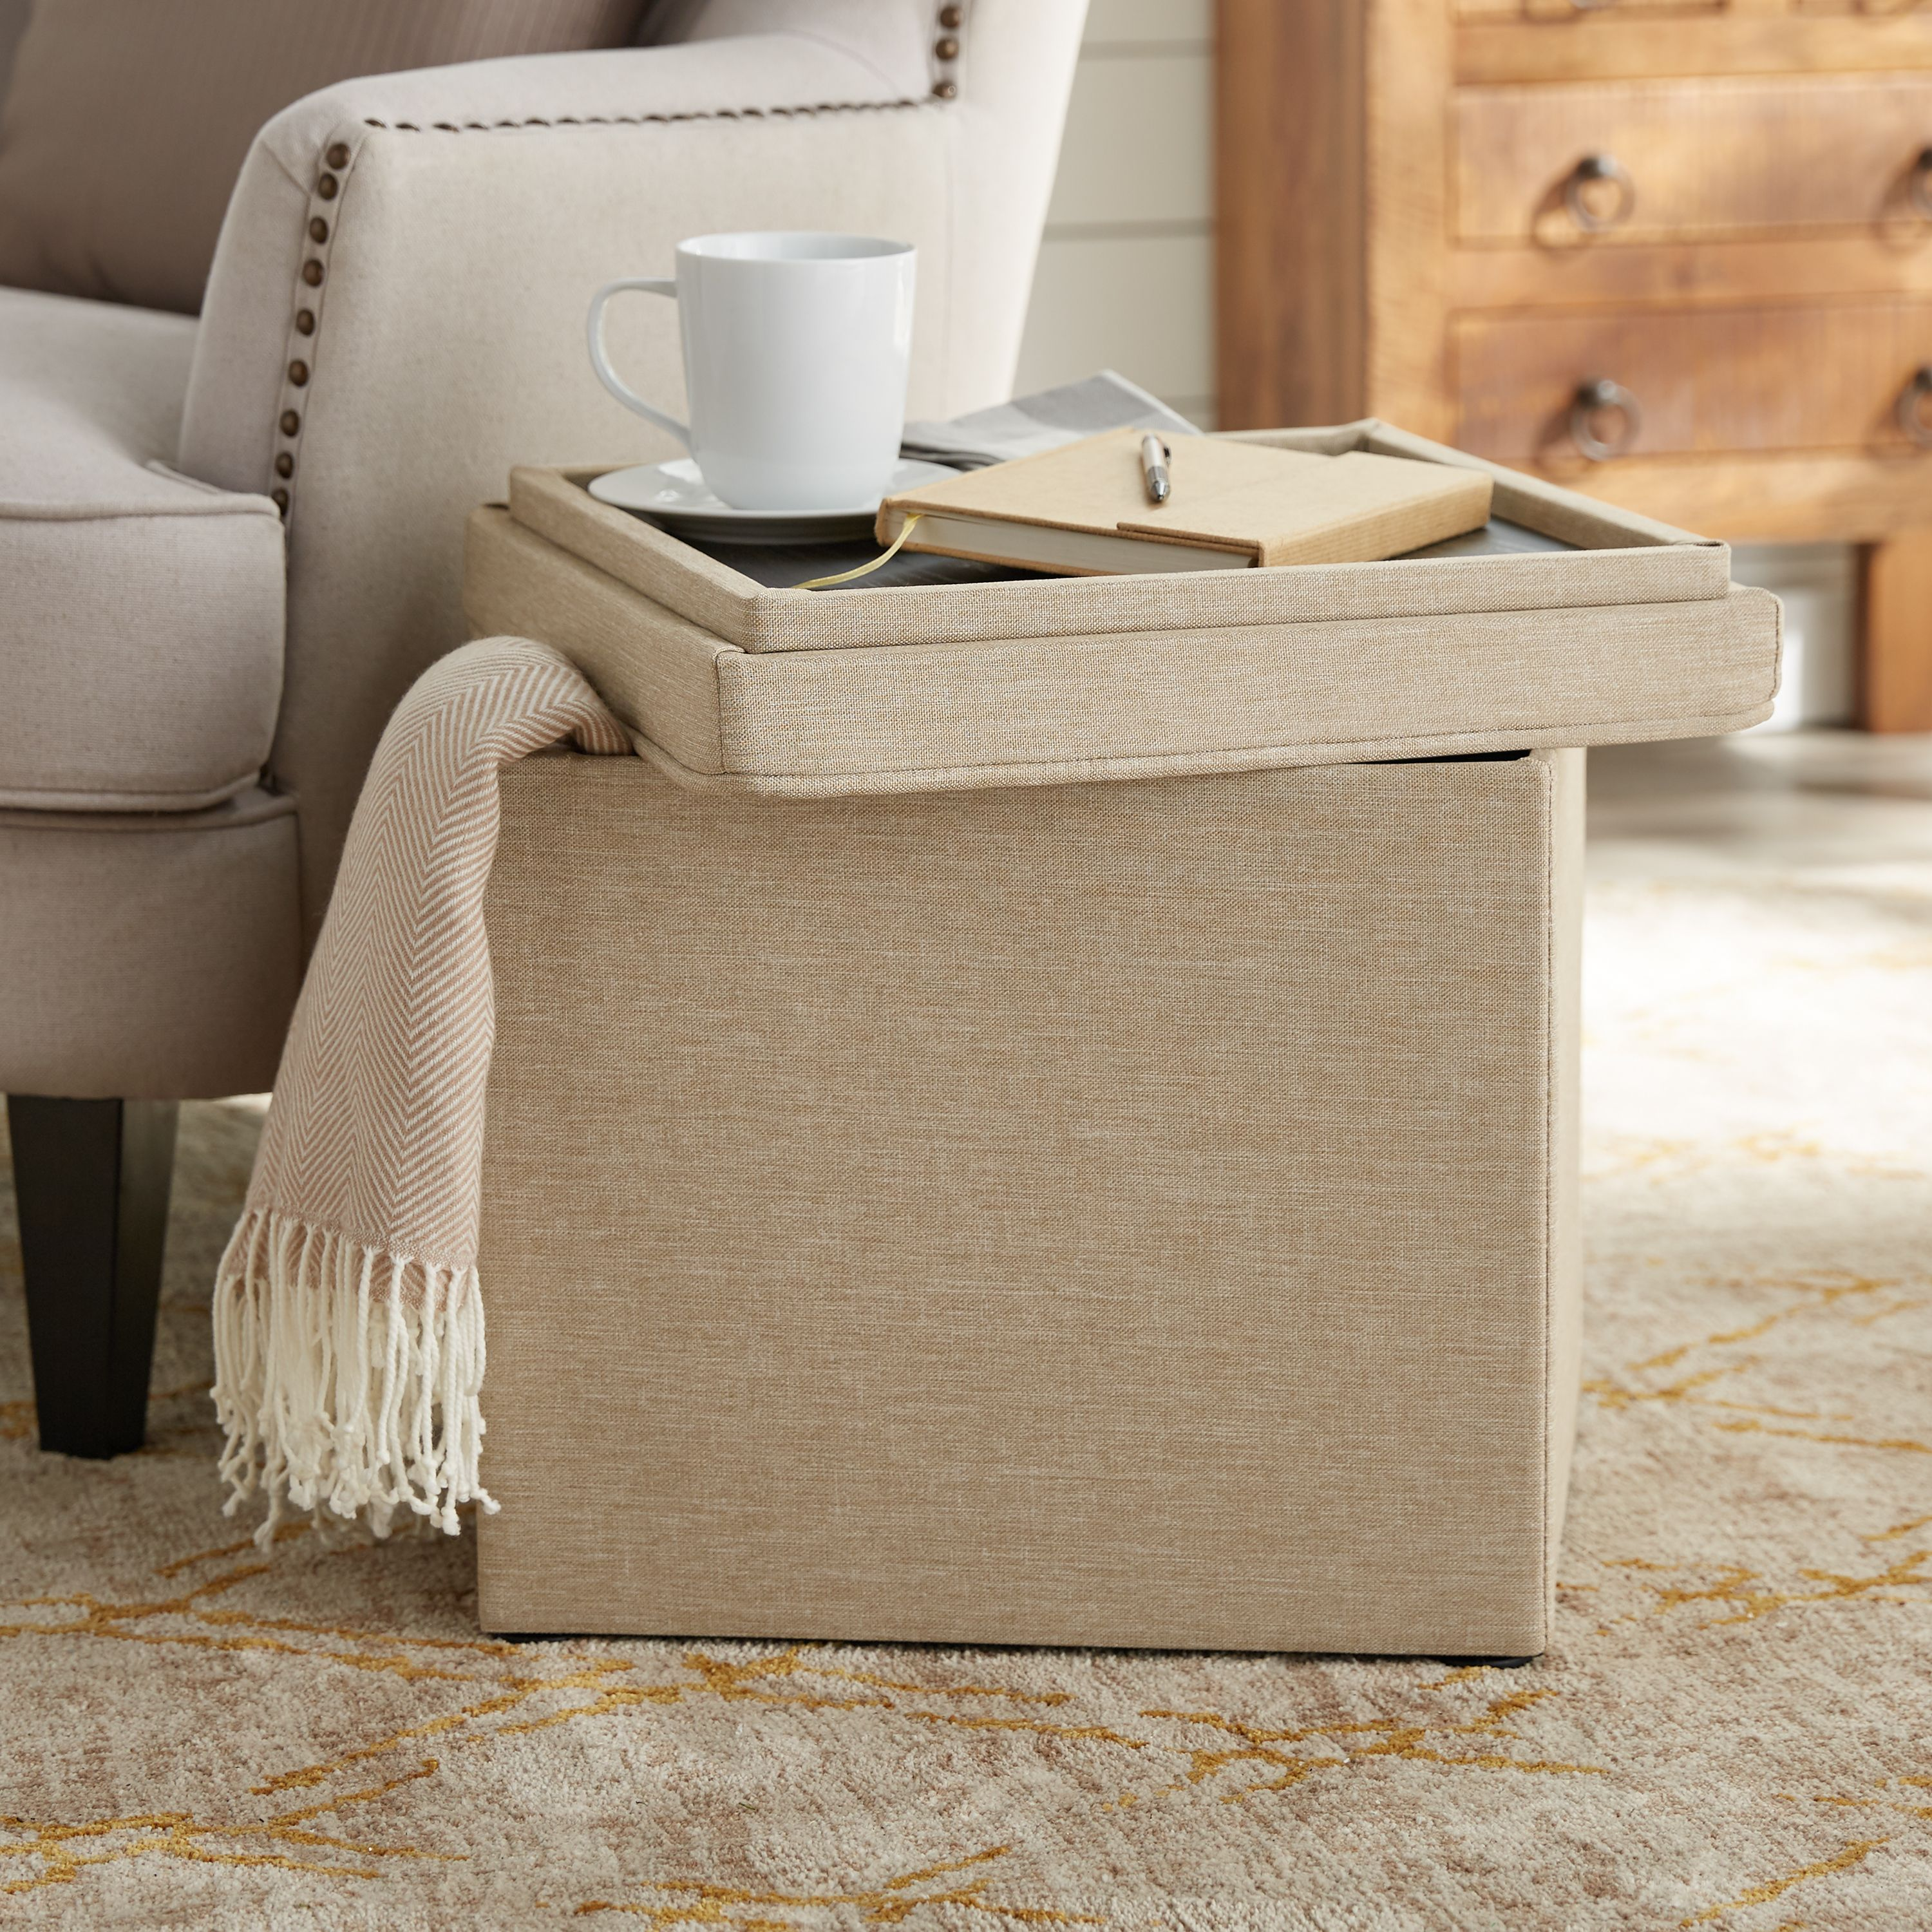 """Better Homes & Gardens Storage Ottoman with Tray, 16"""", Tan"""